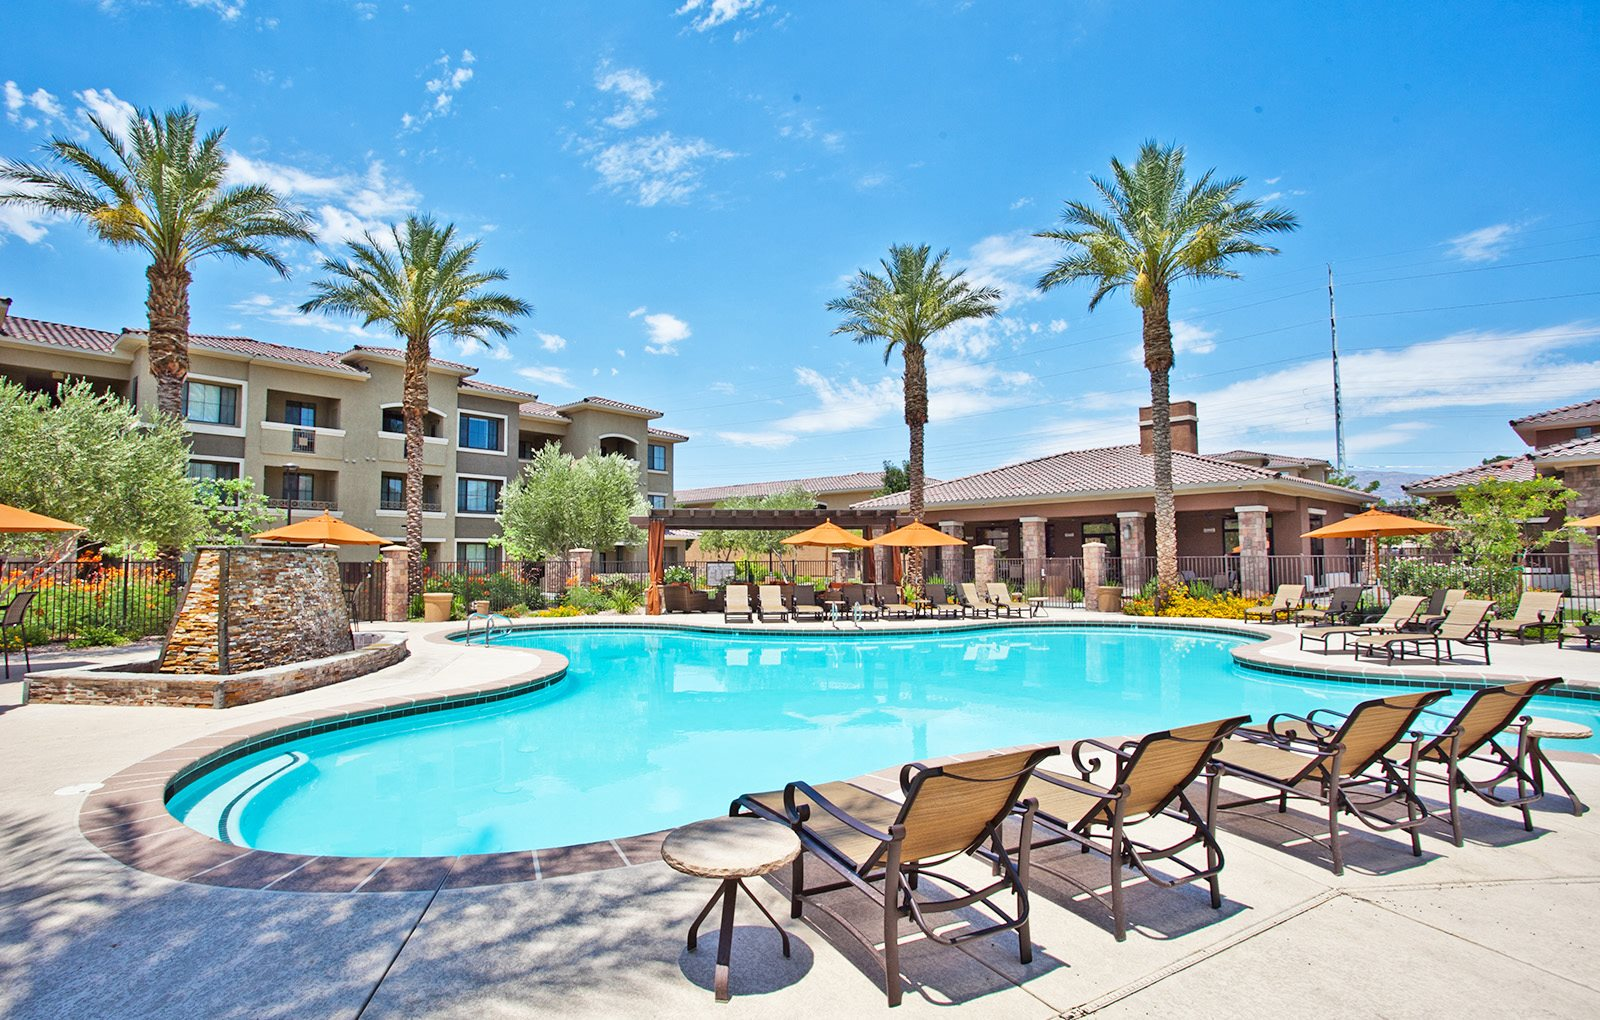 Apartments For Rent In Summerlin